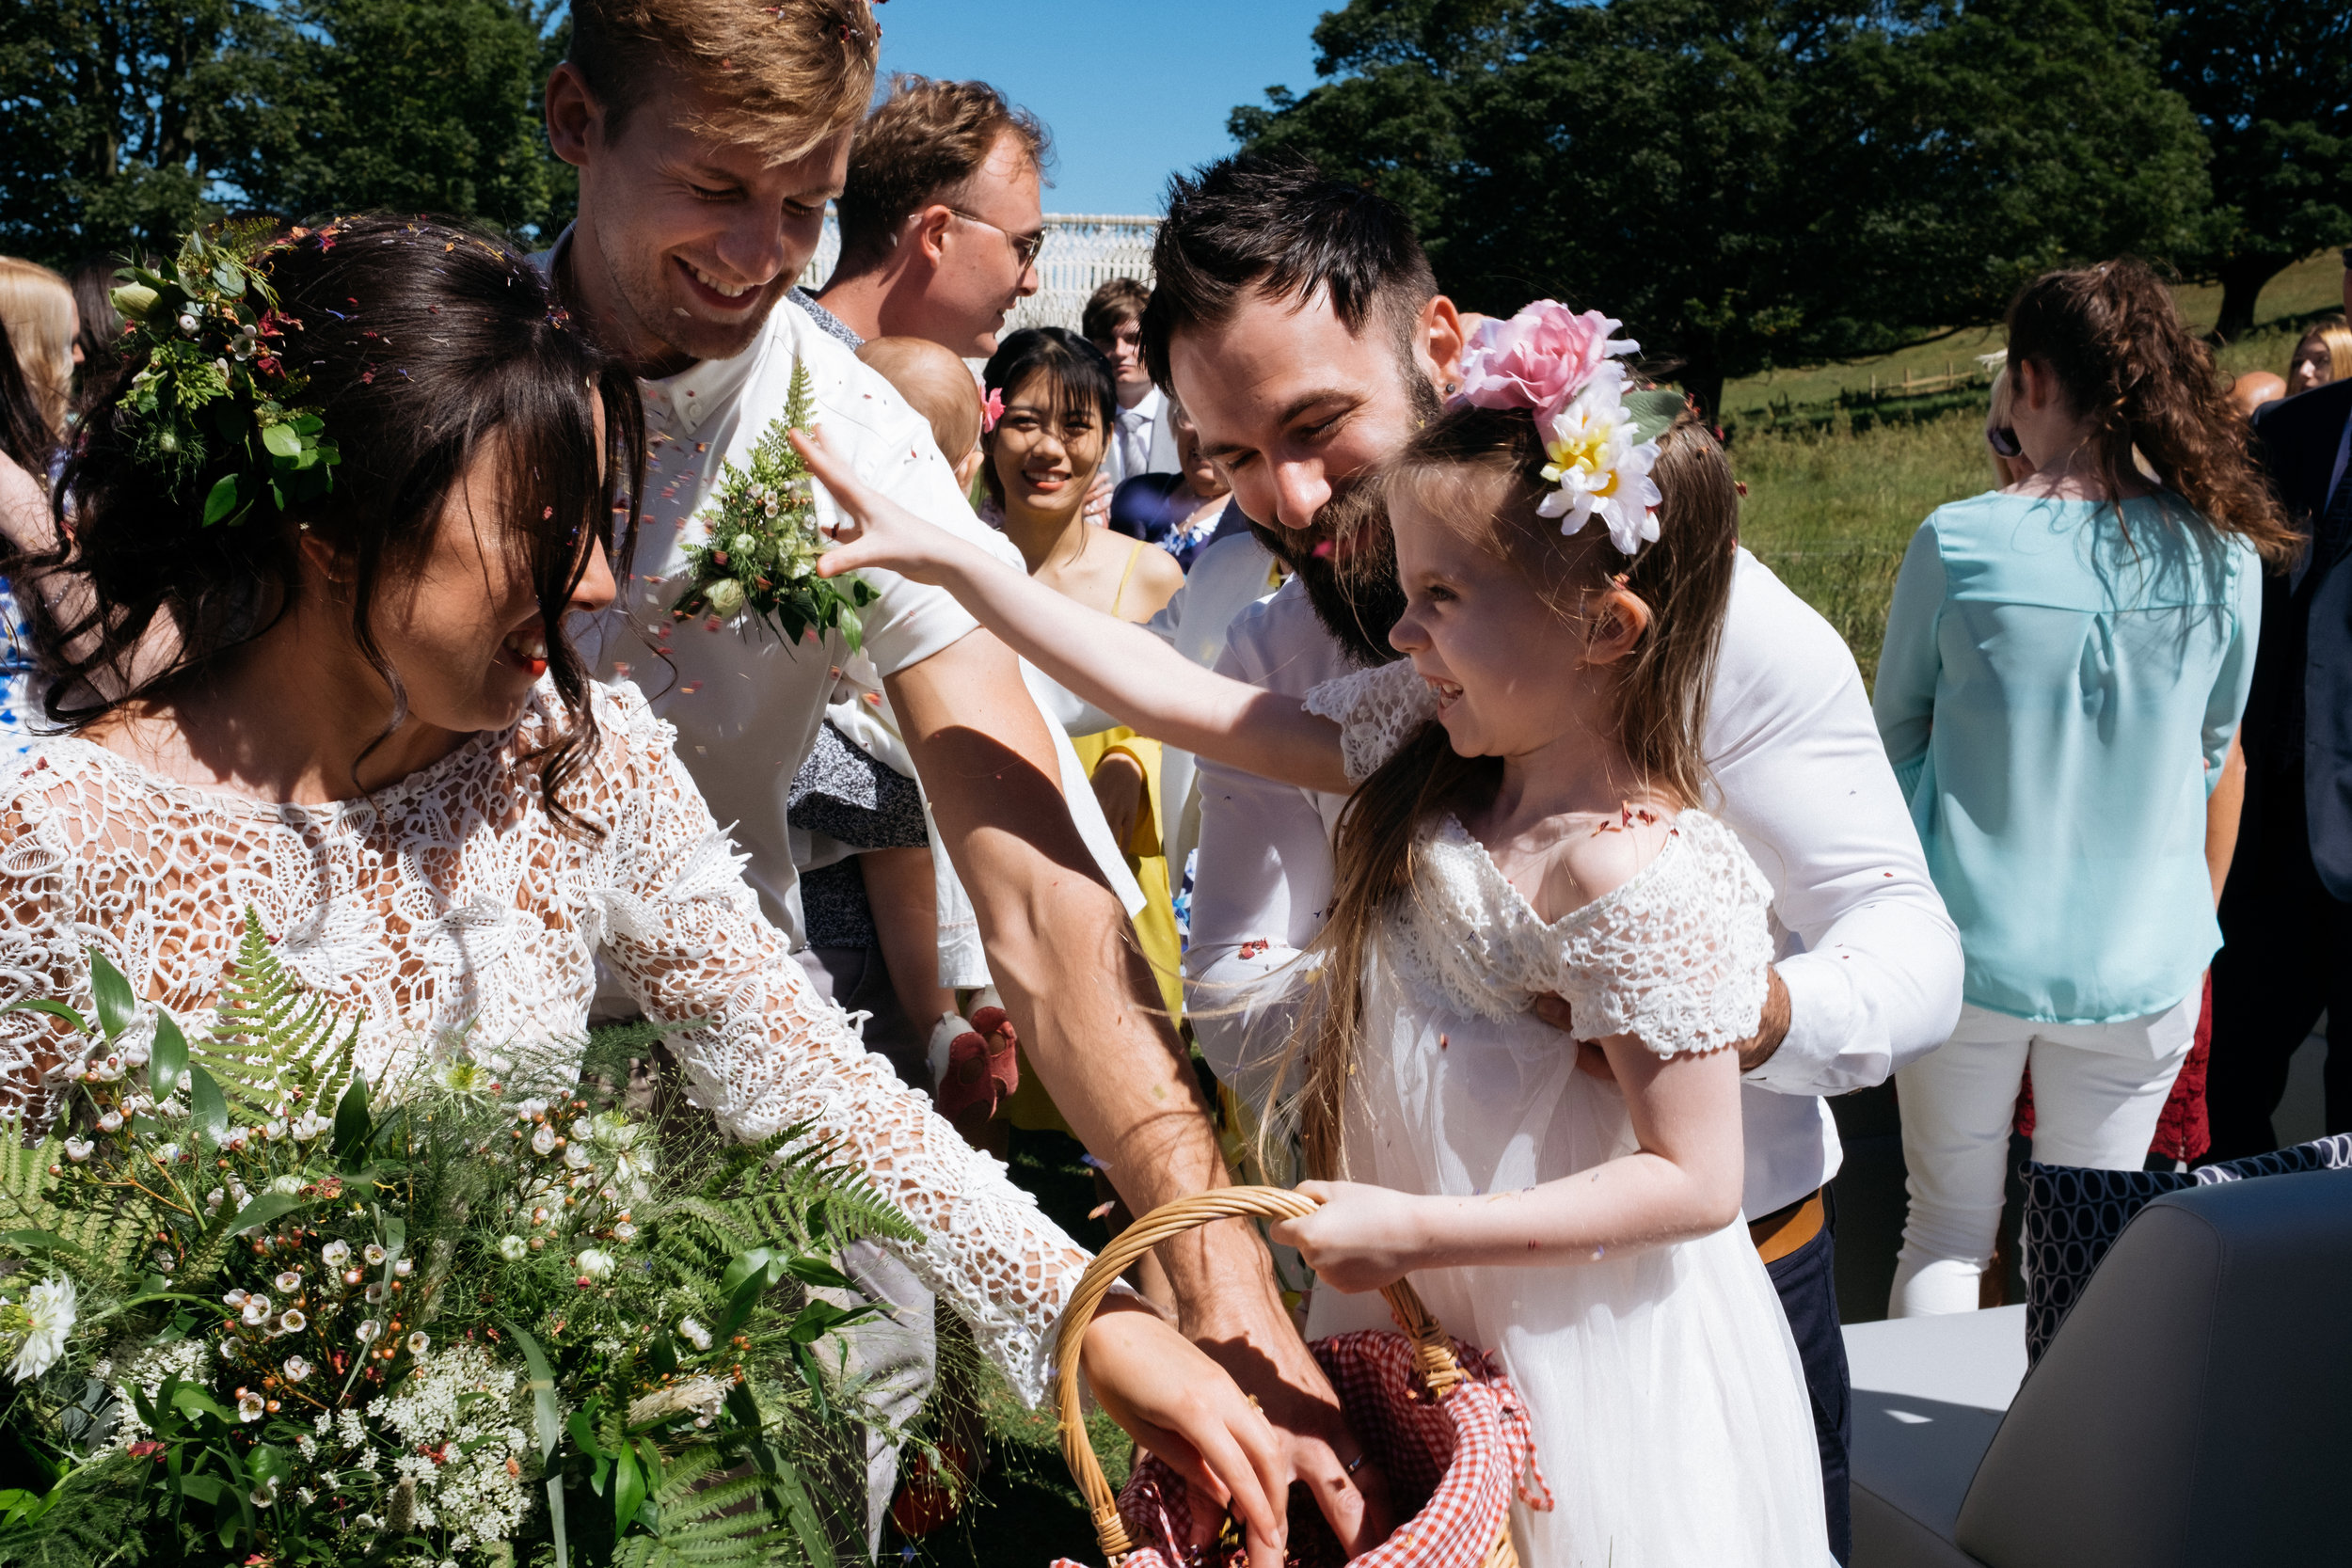 Flower girl throws confetti over bride